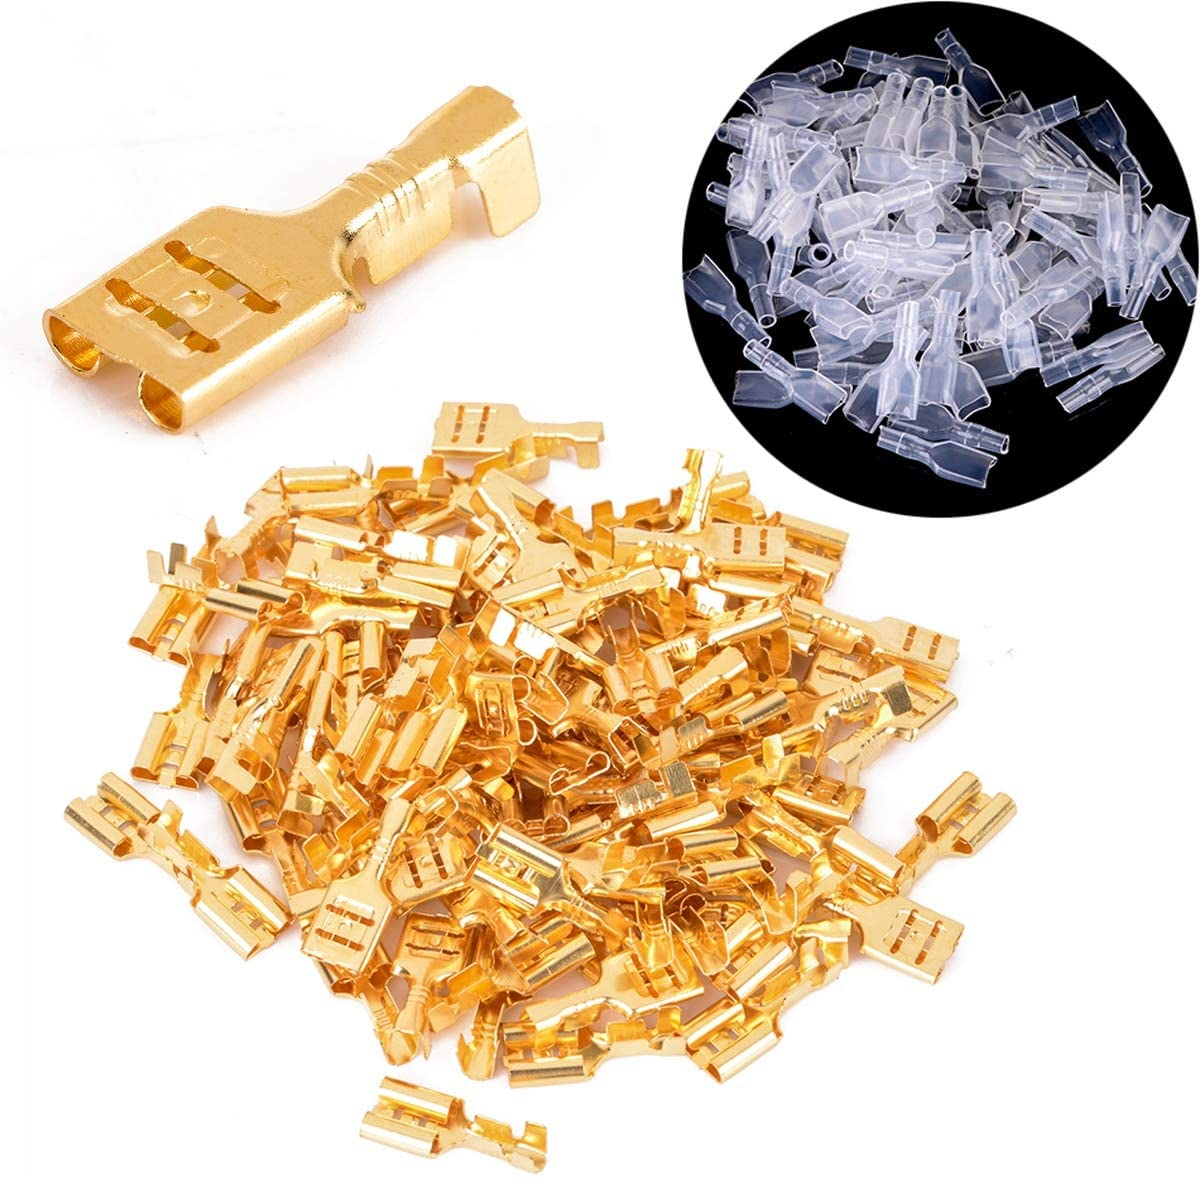 Onvas 100pcs 0.5mm Thickness Brass Crimp Terminal Female Spade Connectors 4.8mm + 100pcs Insulating Sleeves